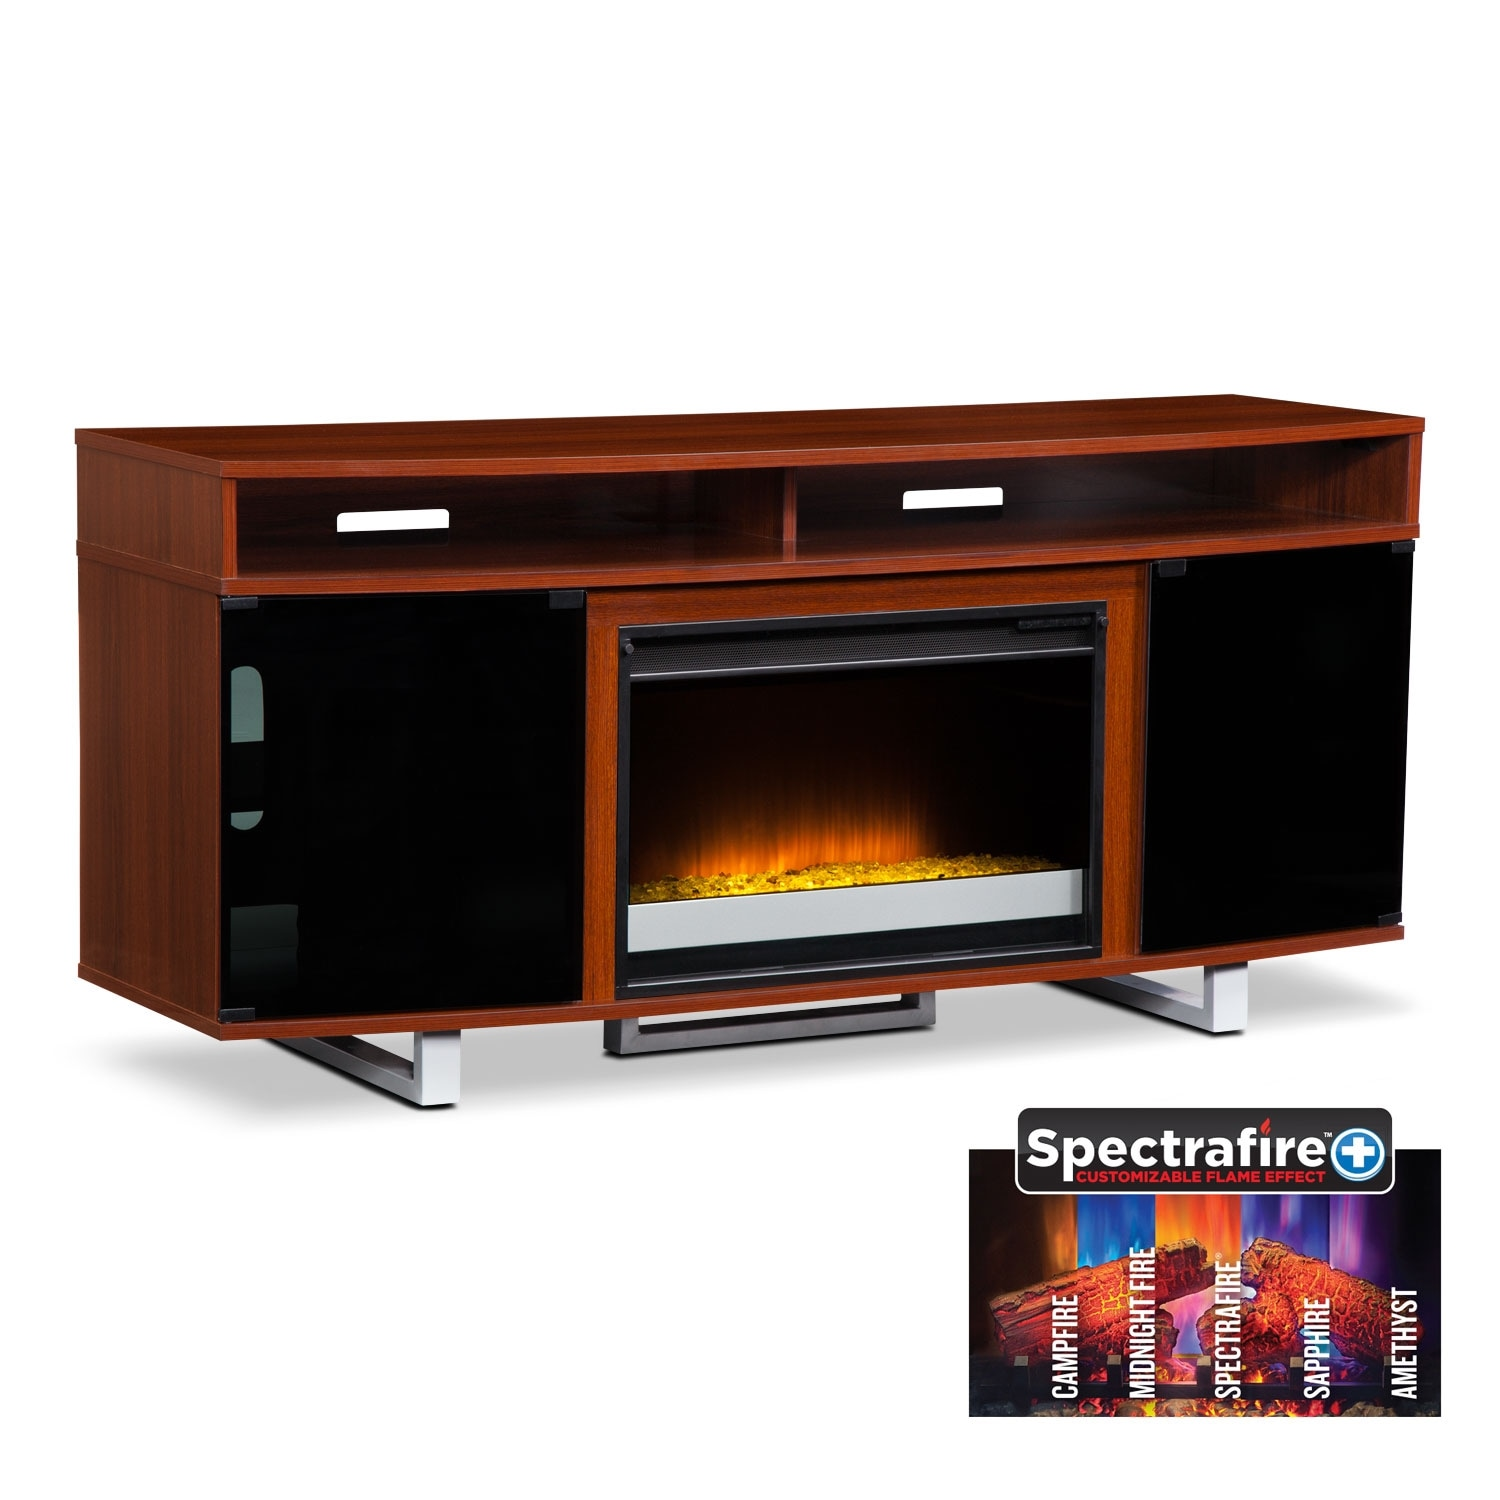 "Pacer 64"" Contemporary Fireplace TV Stand - Cherry"